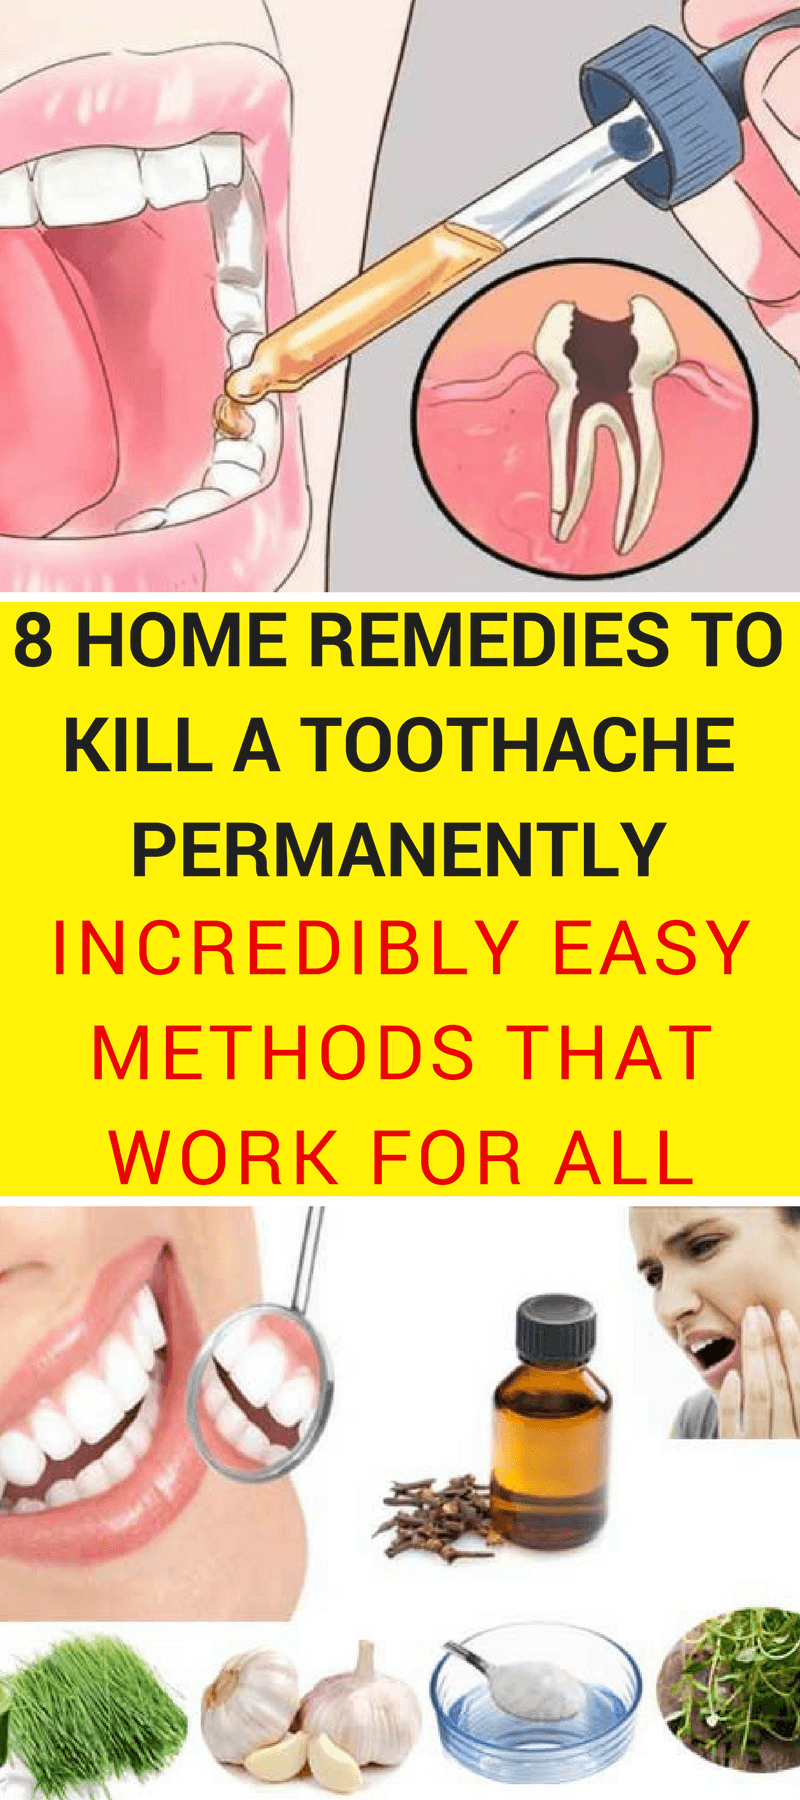 A toothache is something which we all have experienced at least once in our lifetime. That's why we brought you some homemade remedies that will cost you ...